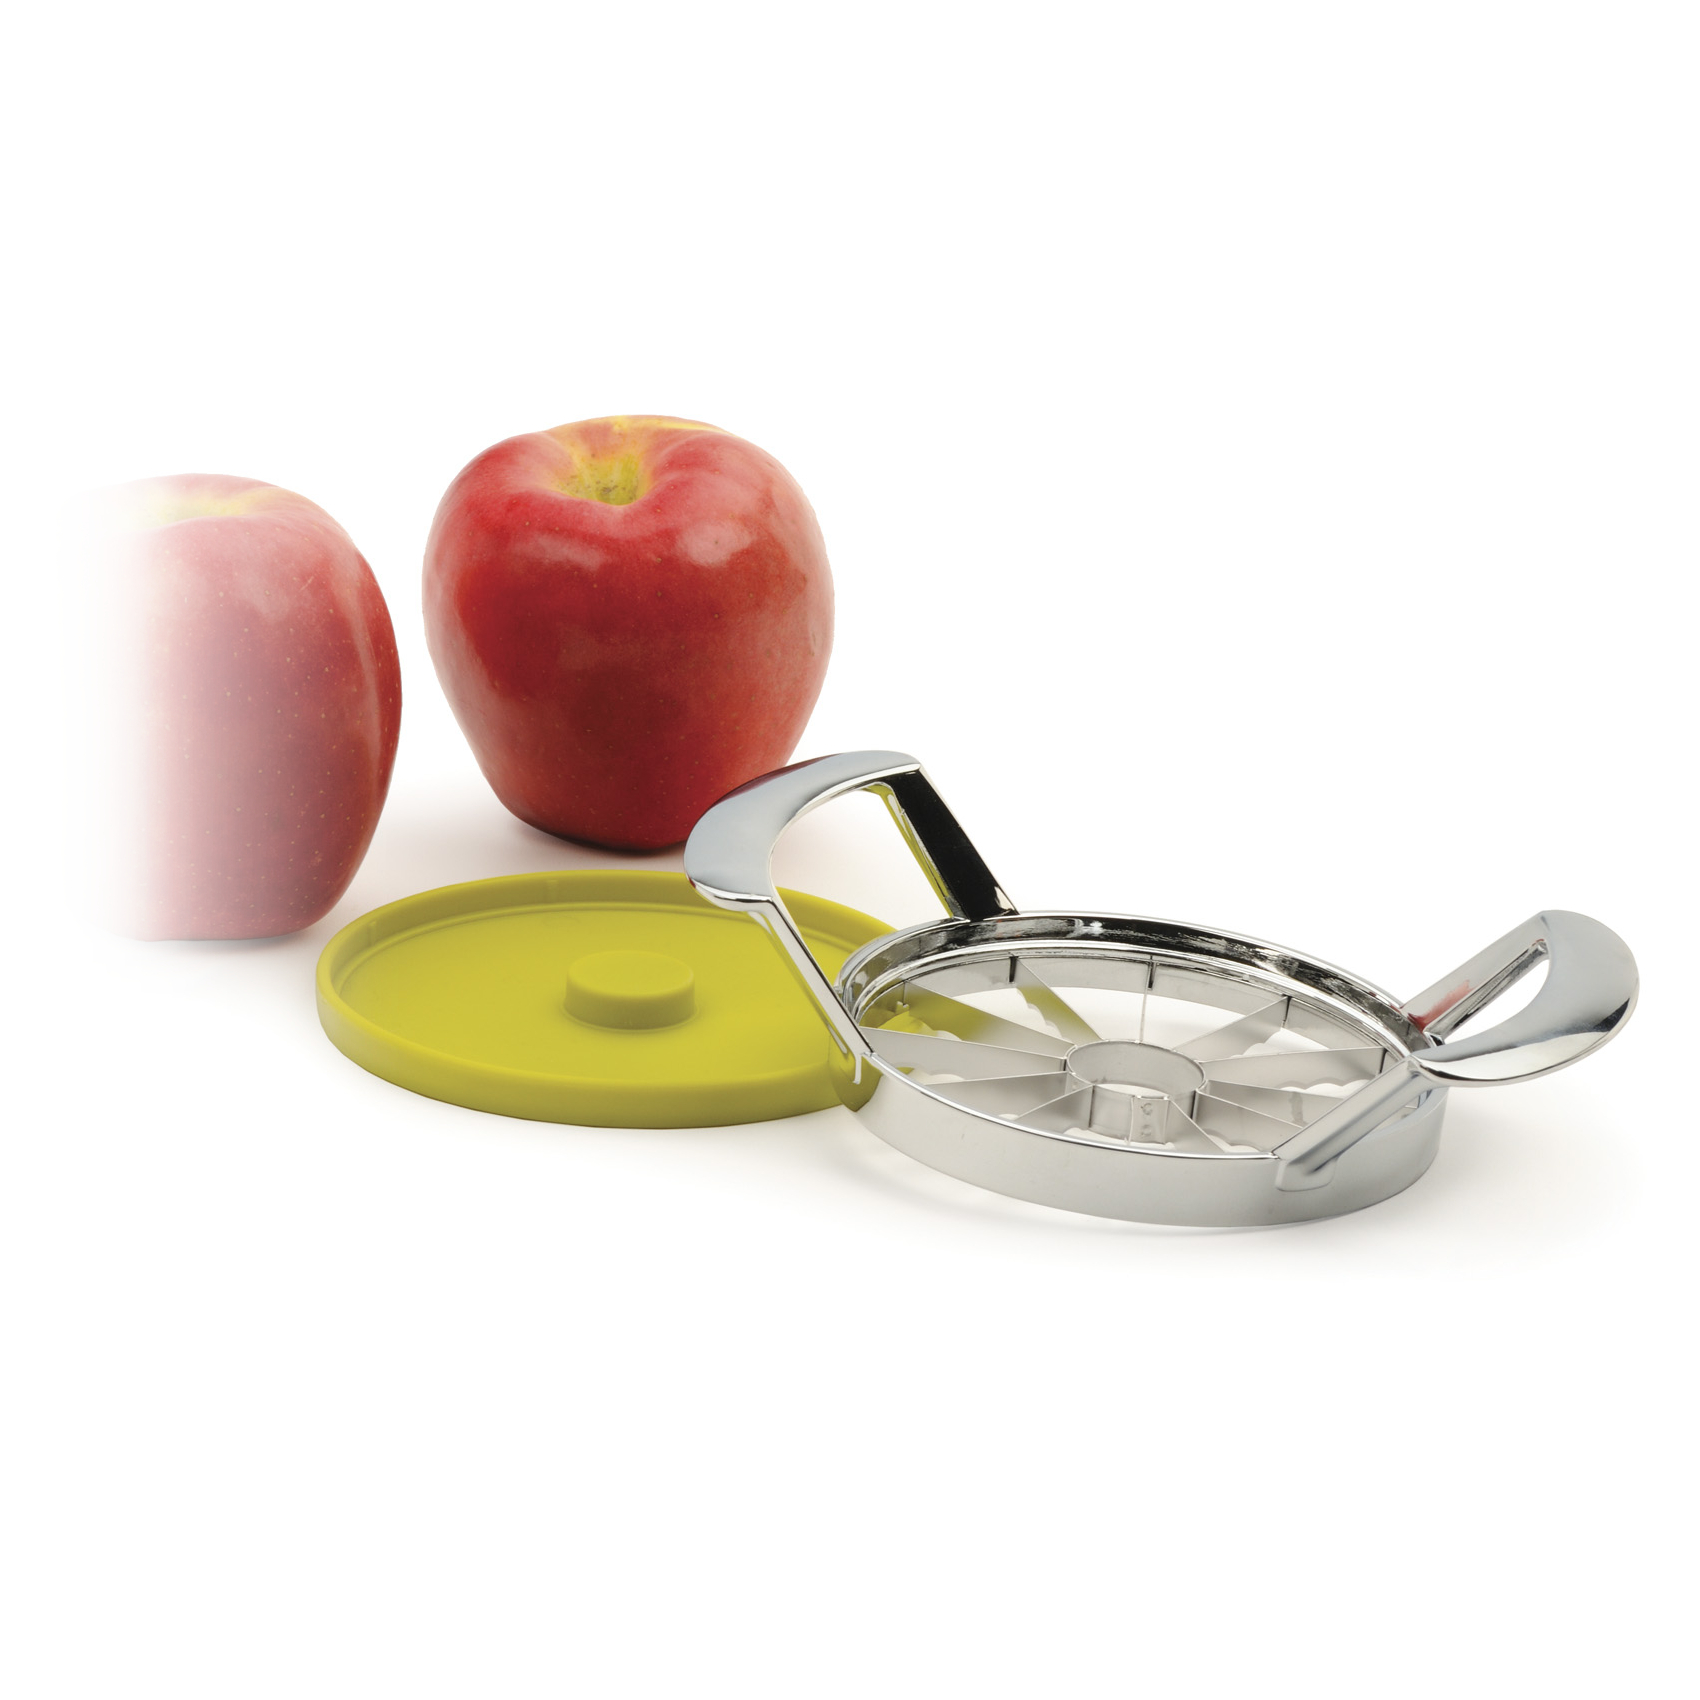 RSVP Classic Z-Gadget Green Jumbo Apple Slicer and Corer